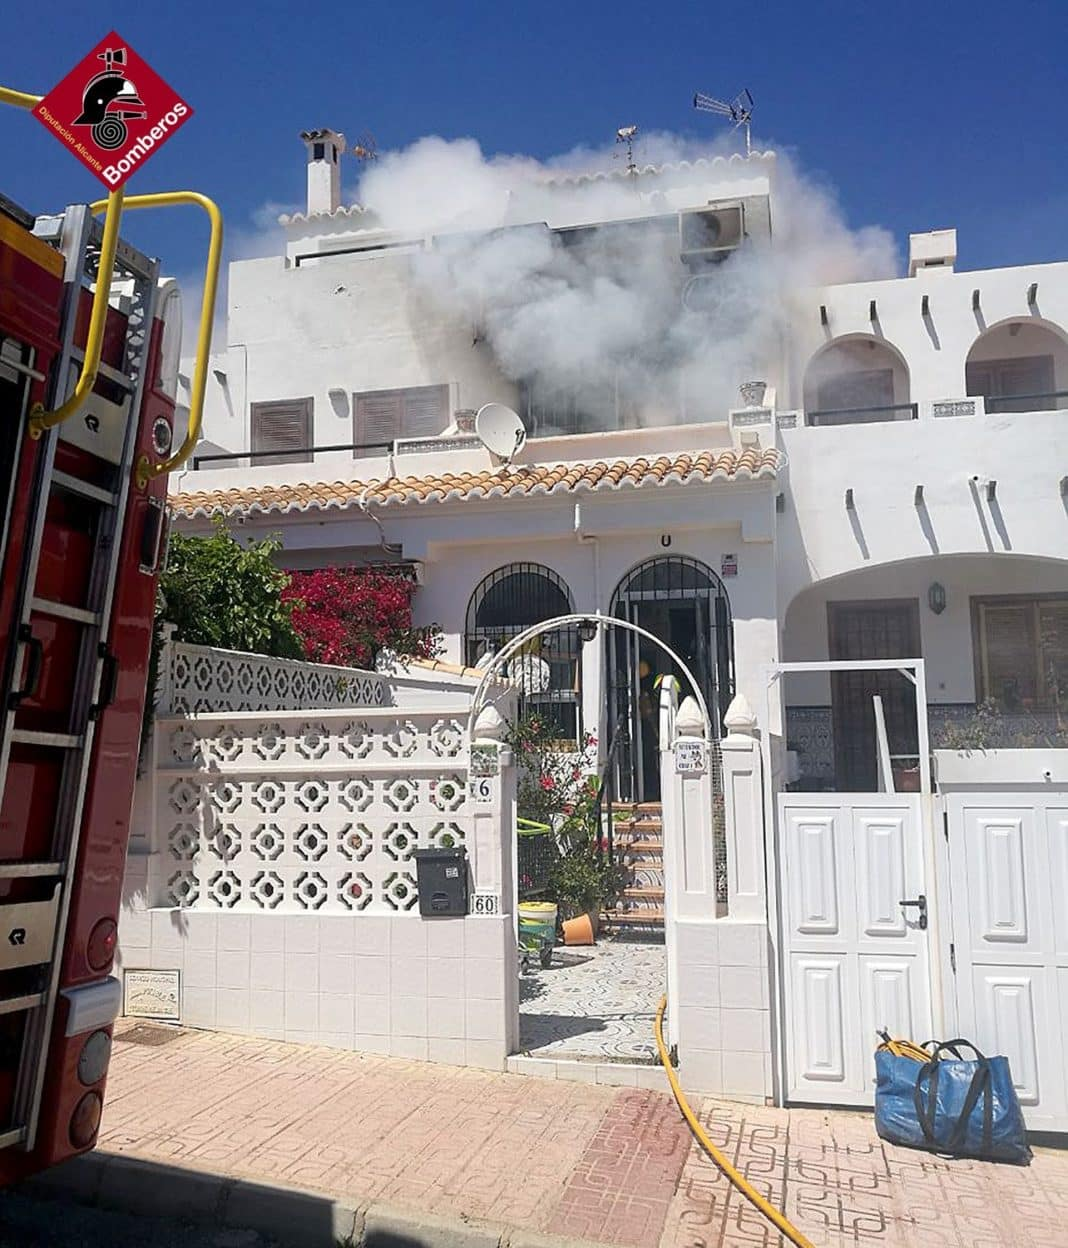 A spectacular fire occurred in a home on Avenida de Torreblanca in Torrevieja on Thursday afternoon